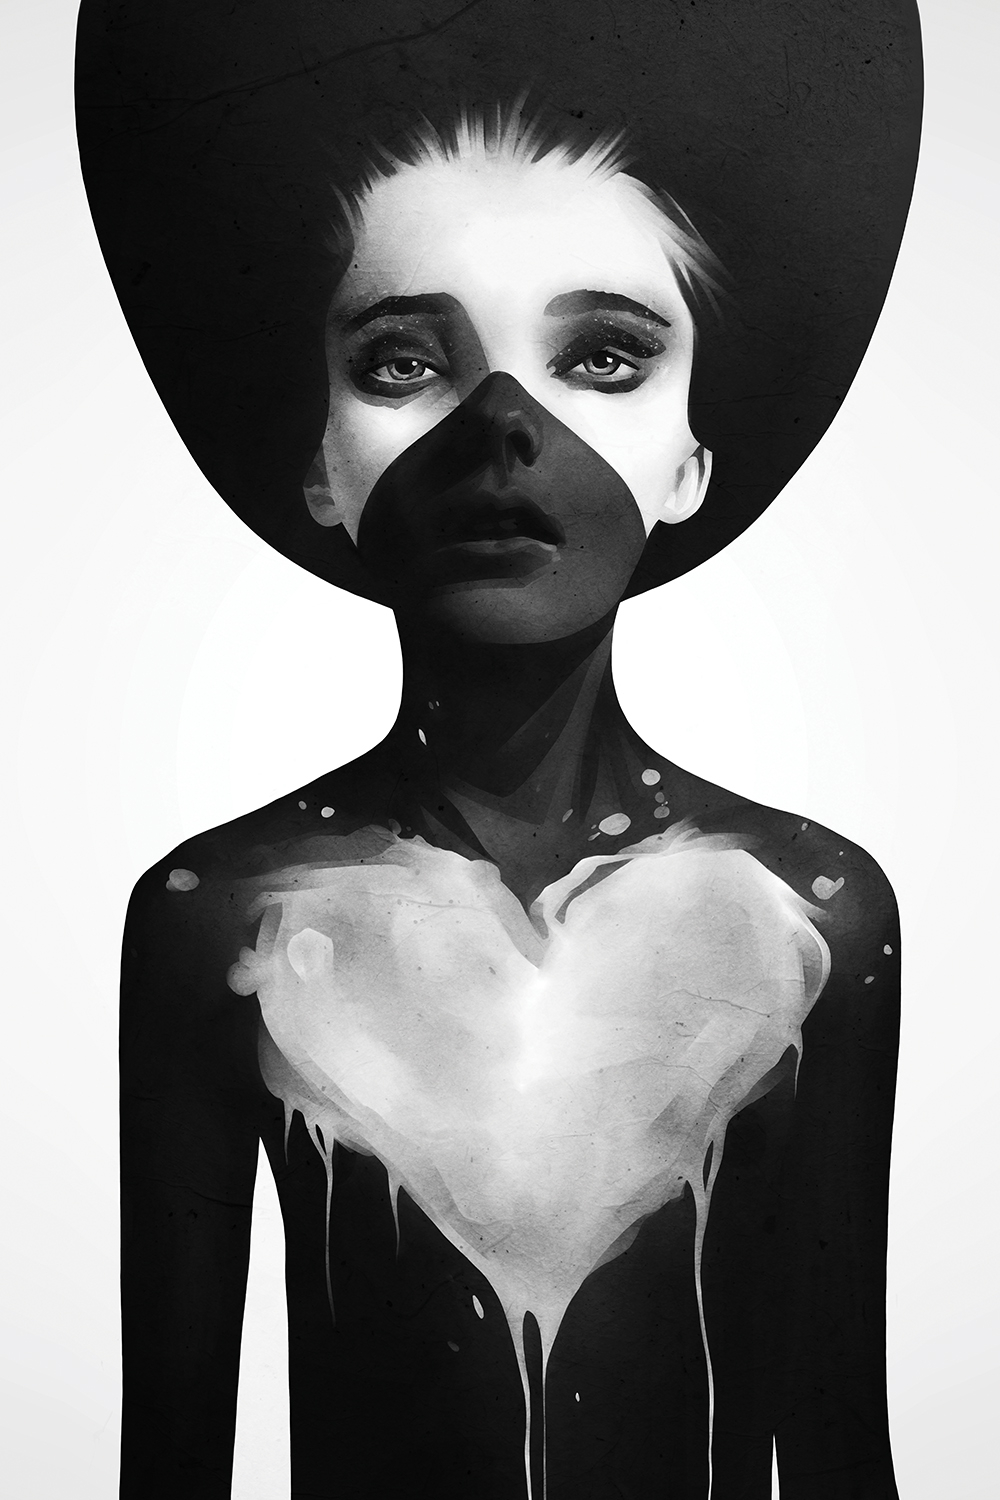 a girl shadowed in black with a gray heart painted on her chest